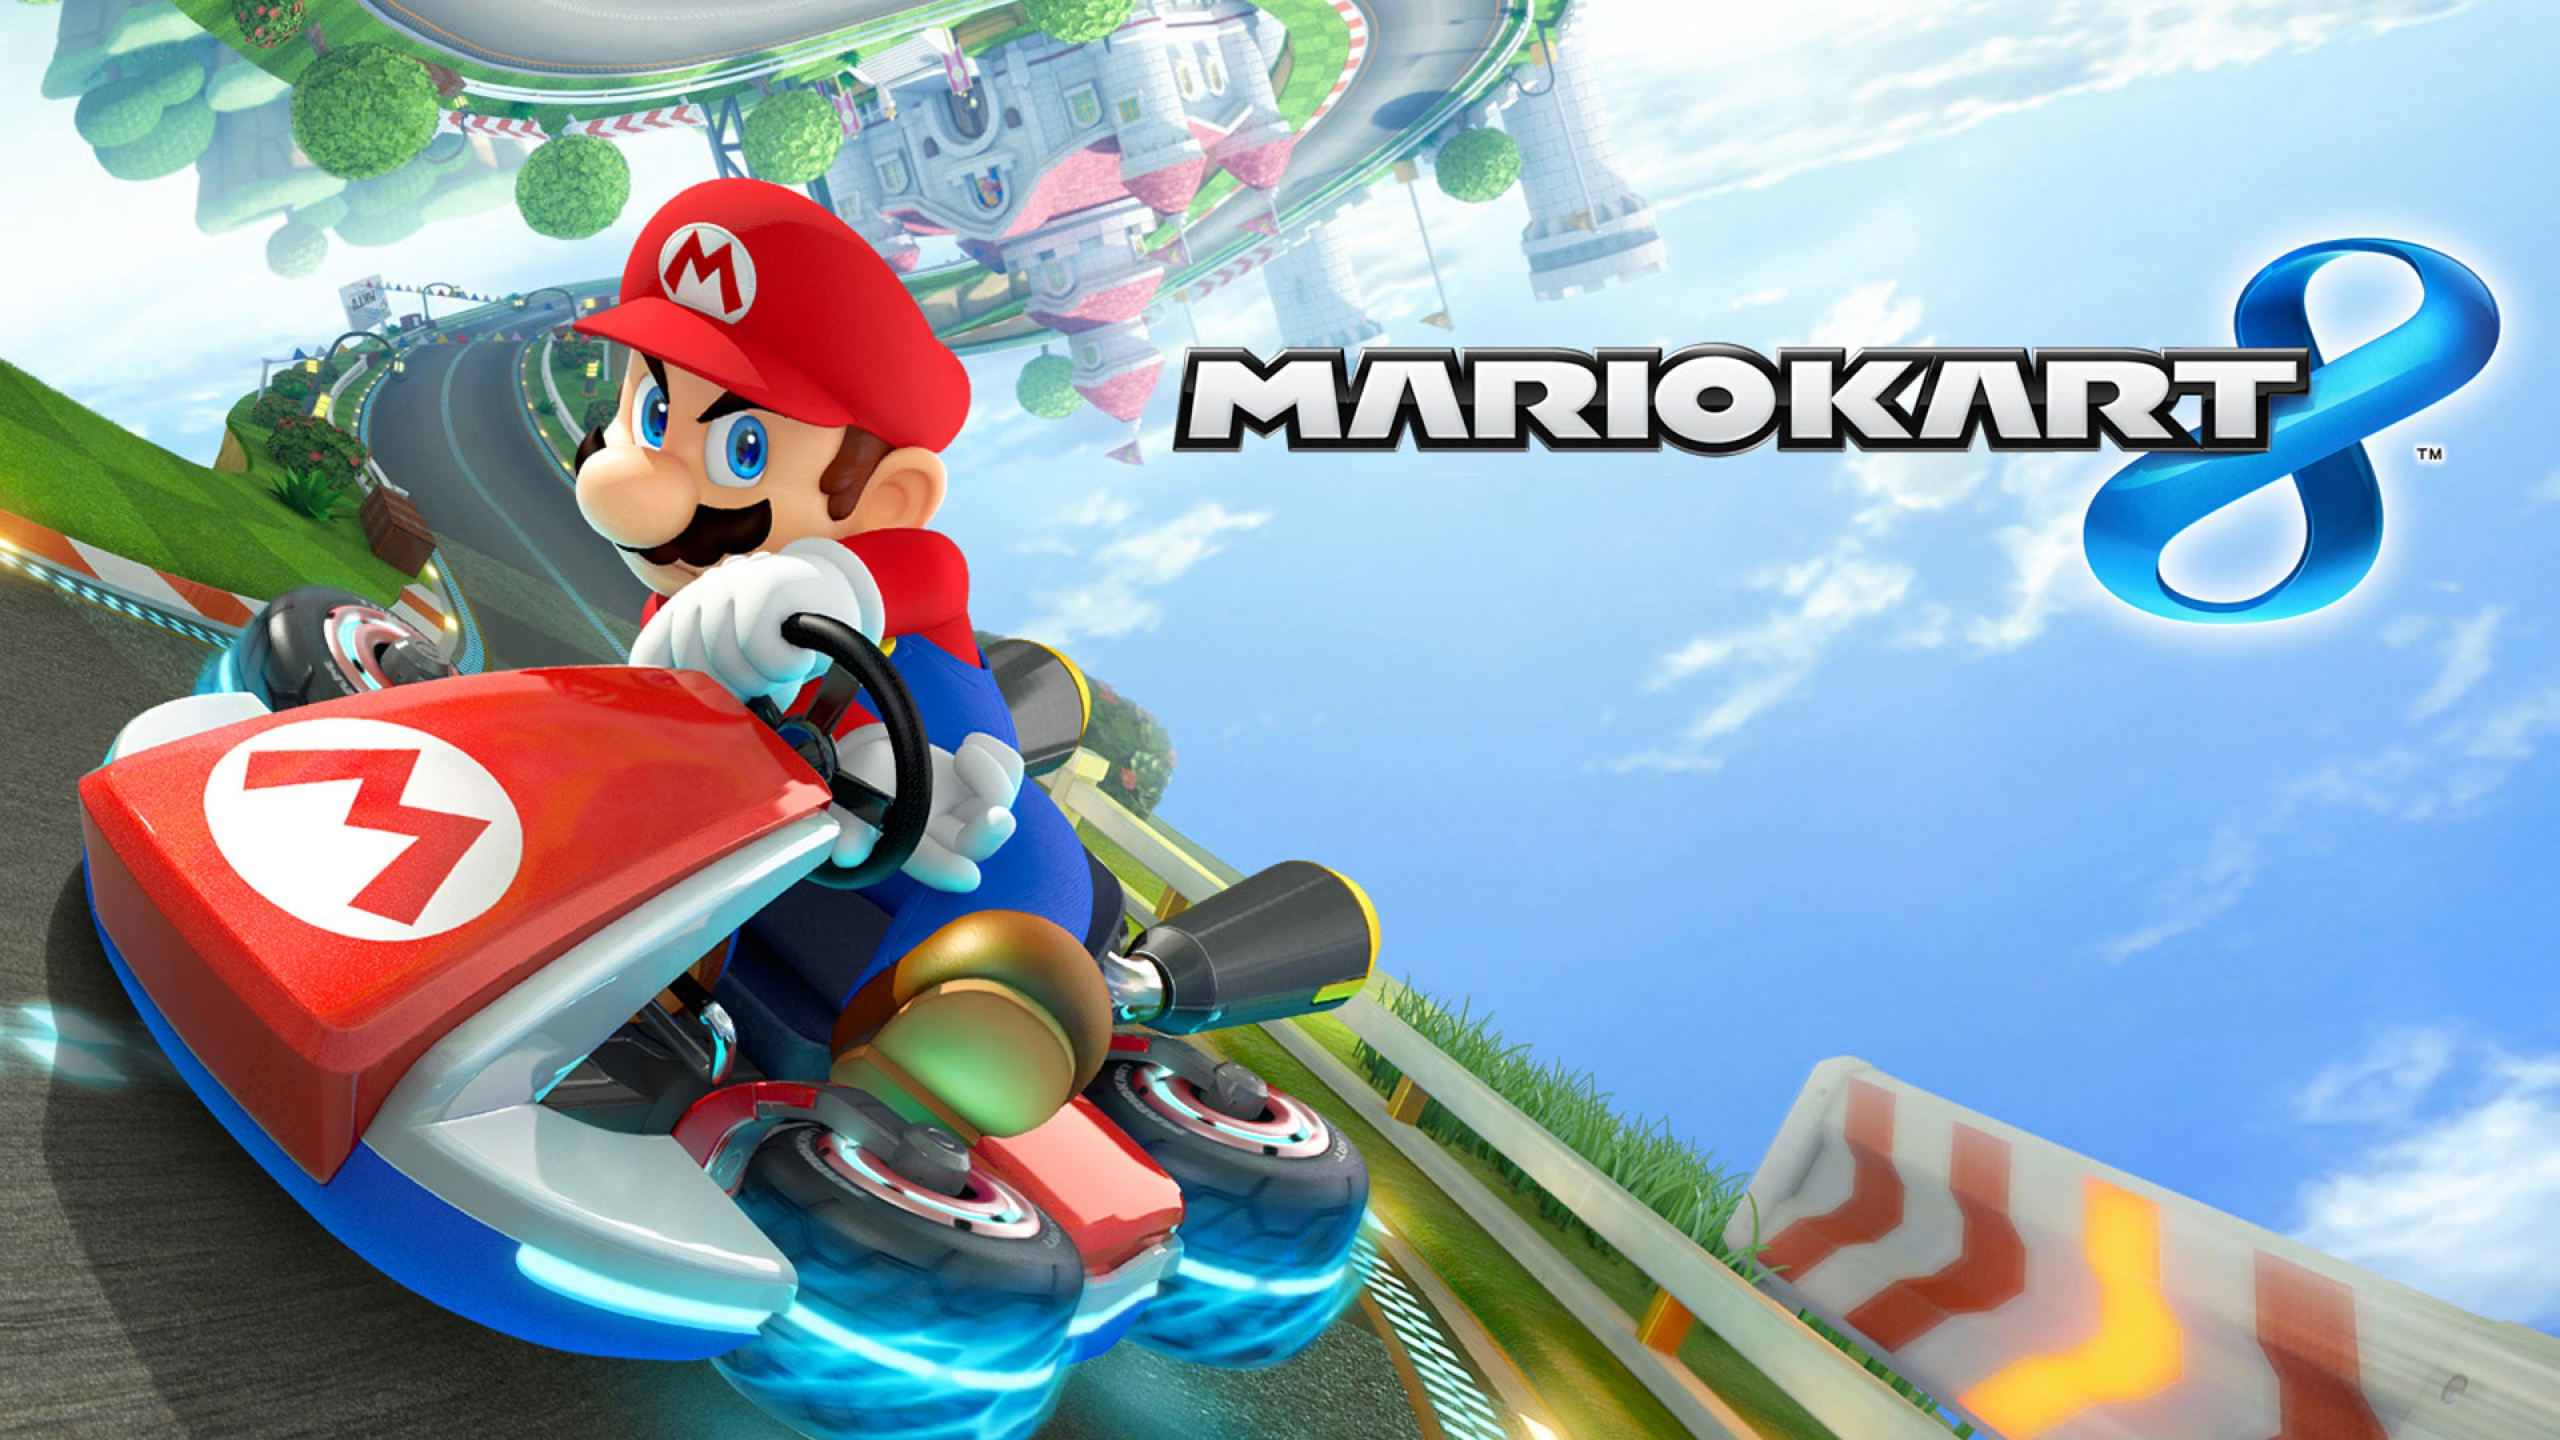 Gamer Review Mario Kart 8 Finally Catches Up To Hd Graphics On